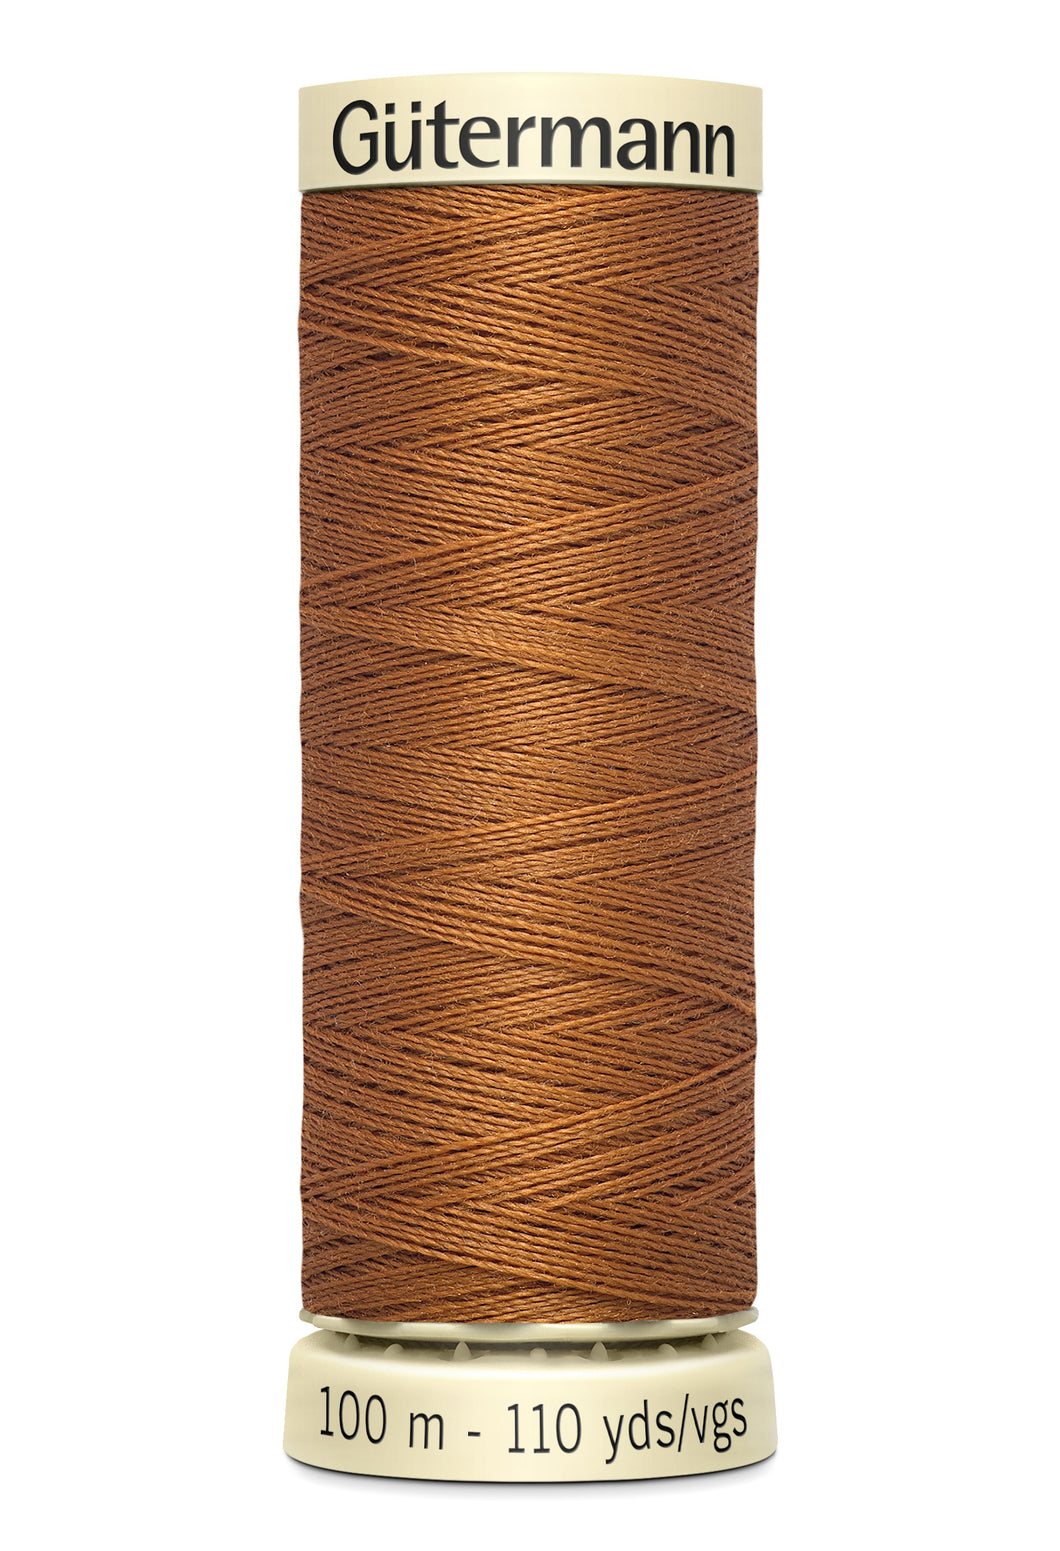 Gutermann Sew All Thread - Colour 448 Light Brown